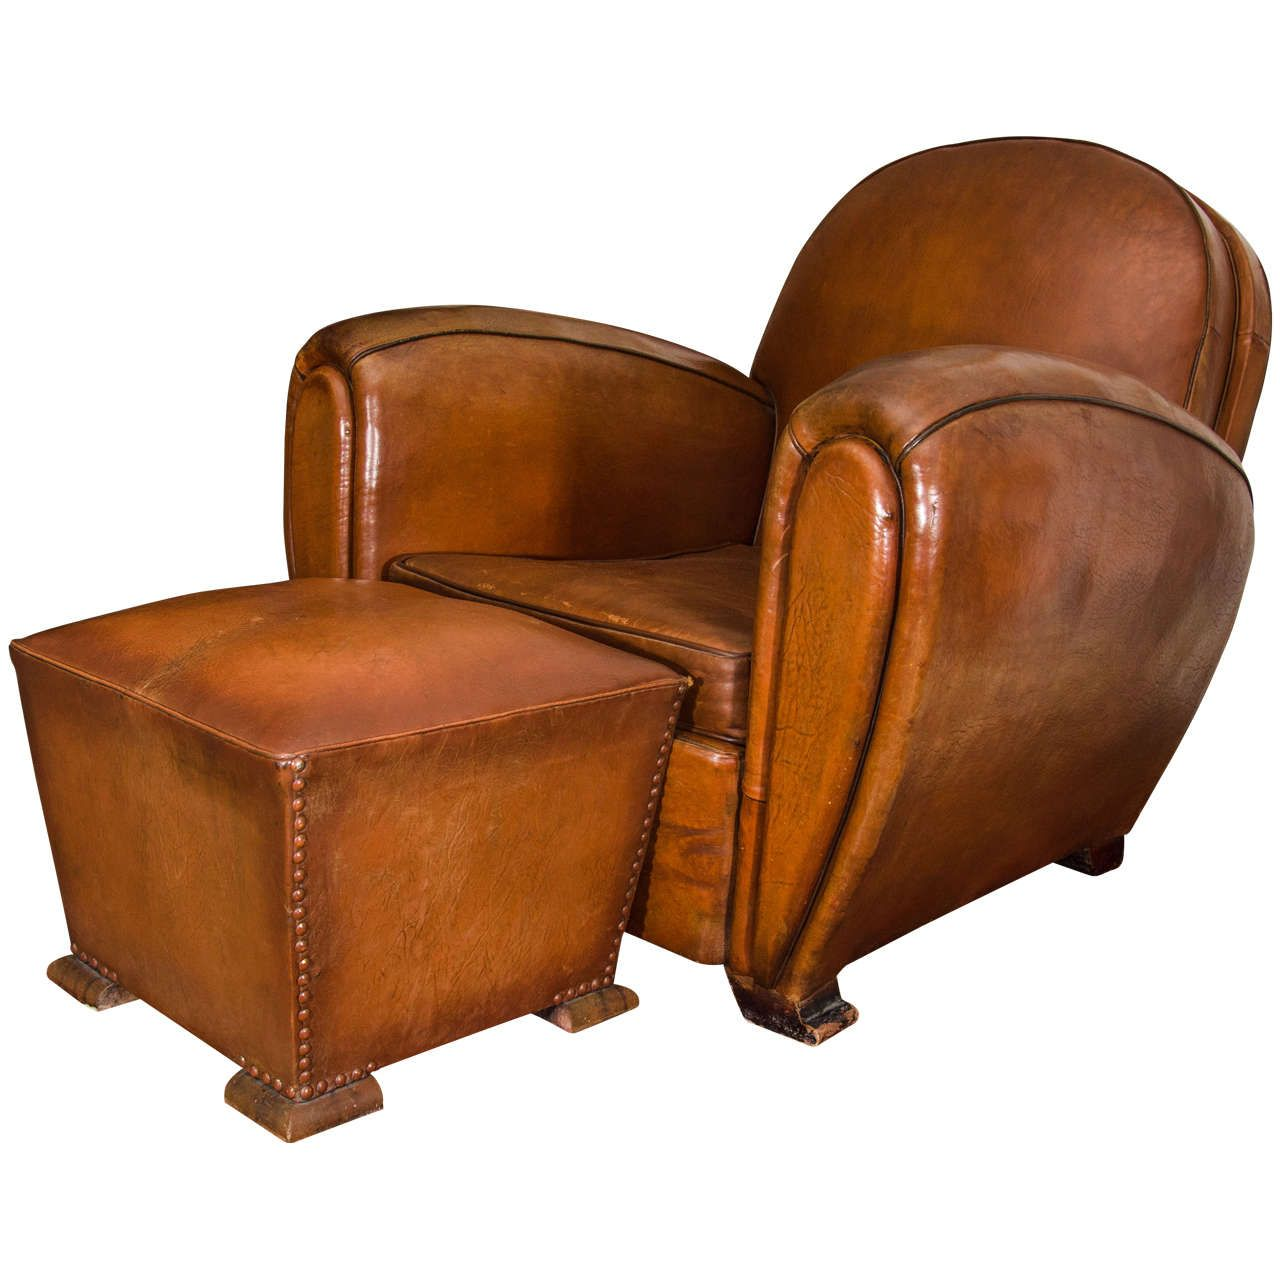 French Round Back Leather Club Chairs  Leather club chairs